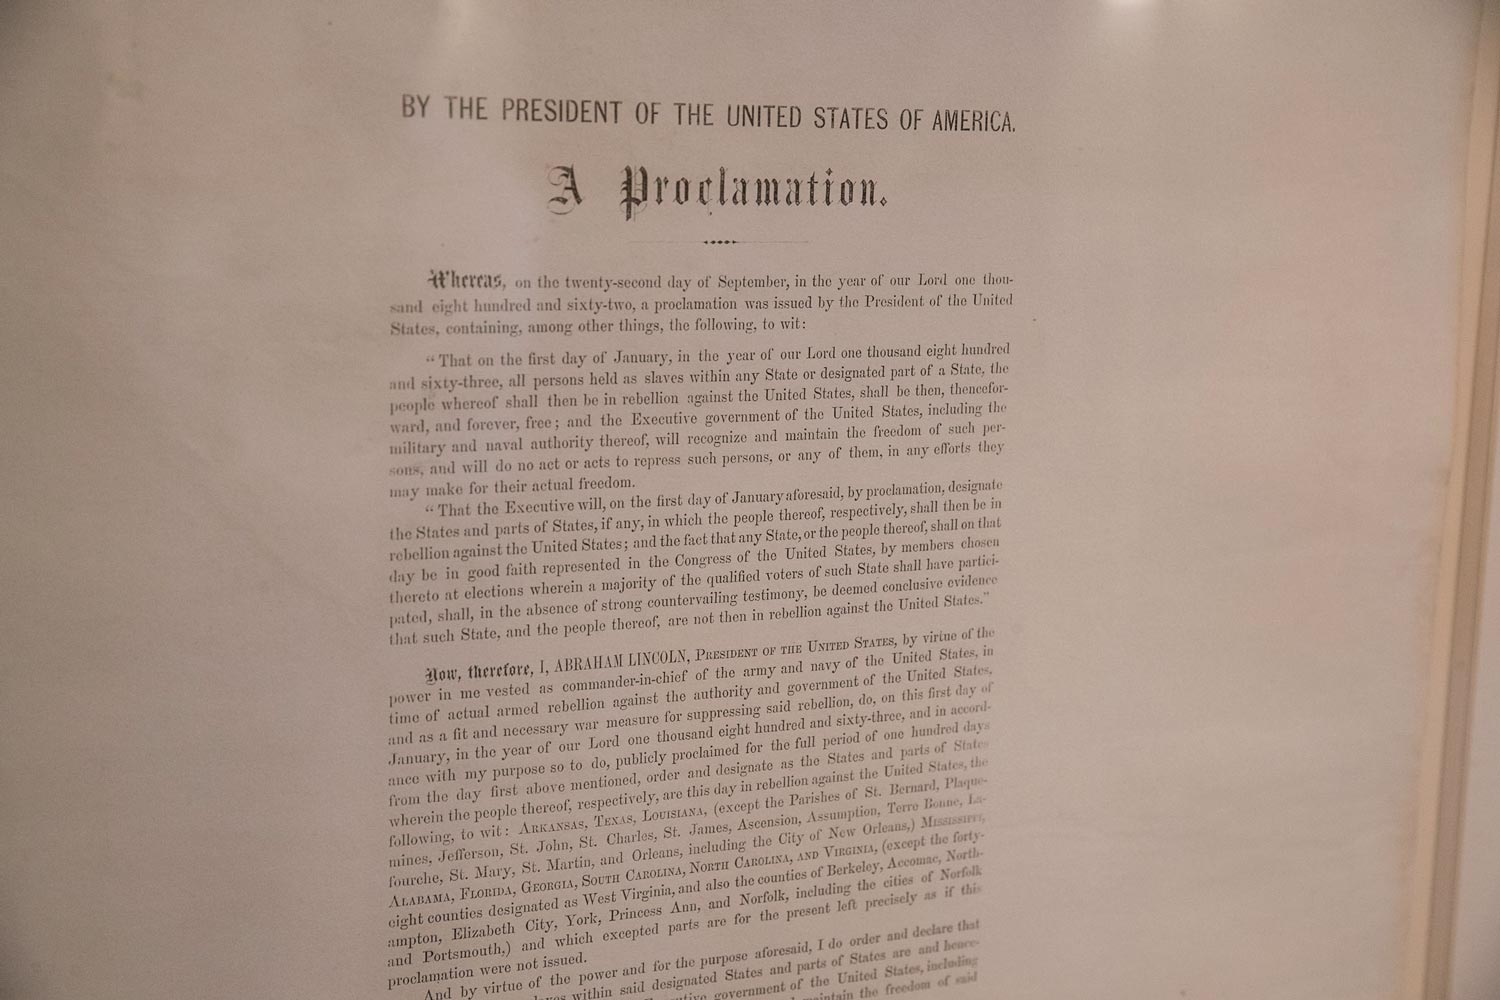 This limited edition of the Emancipation Proclamation, signed by President Abraham Lincoln, legally freed more than 3 million enslaved individuals in the 11 Southern states that had seceded from the Union.